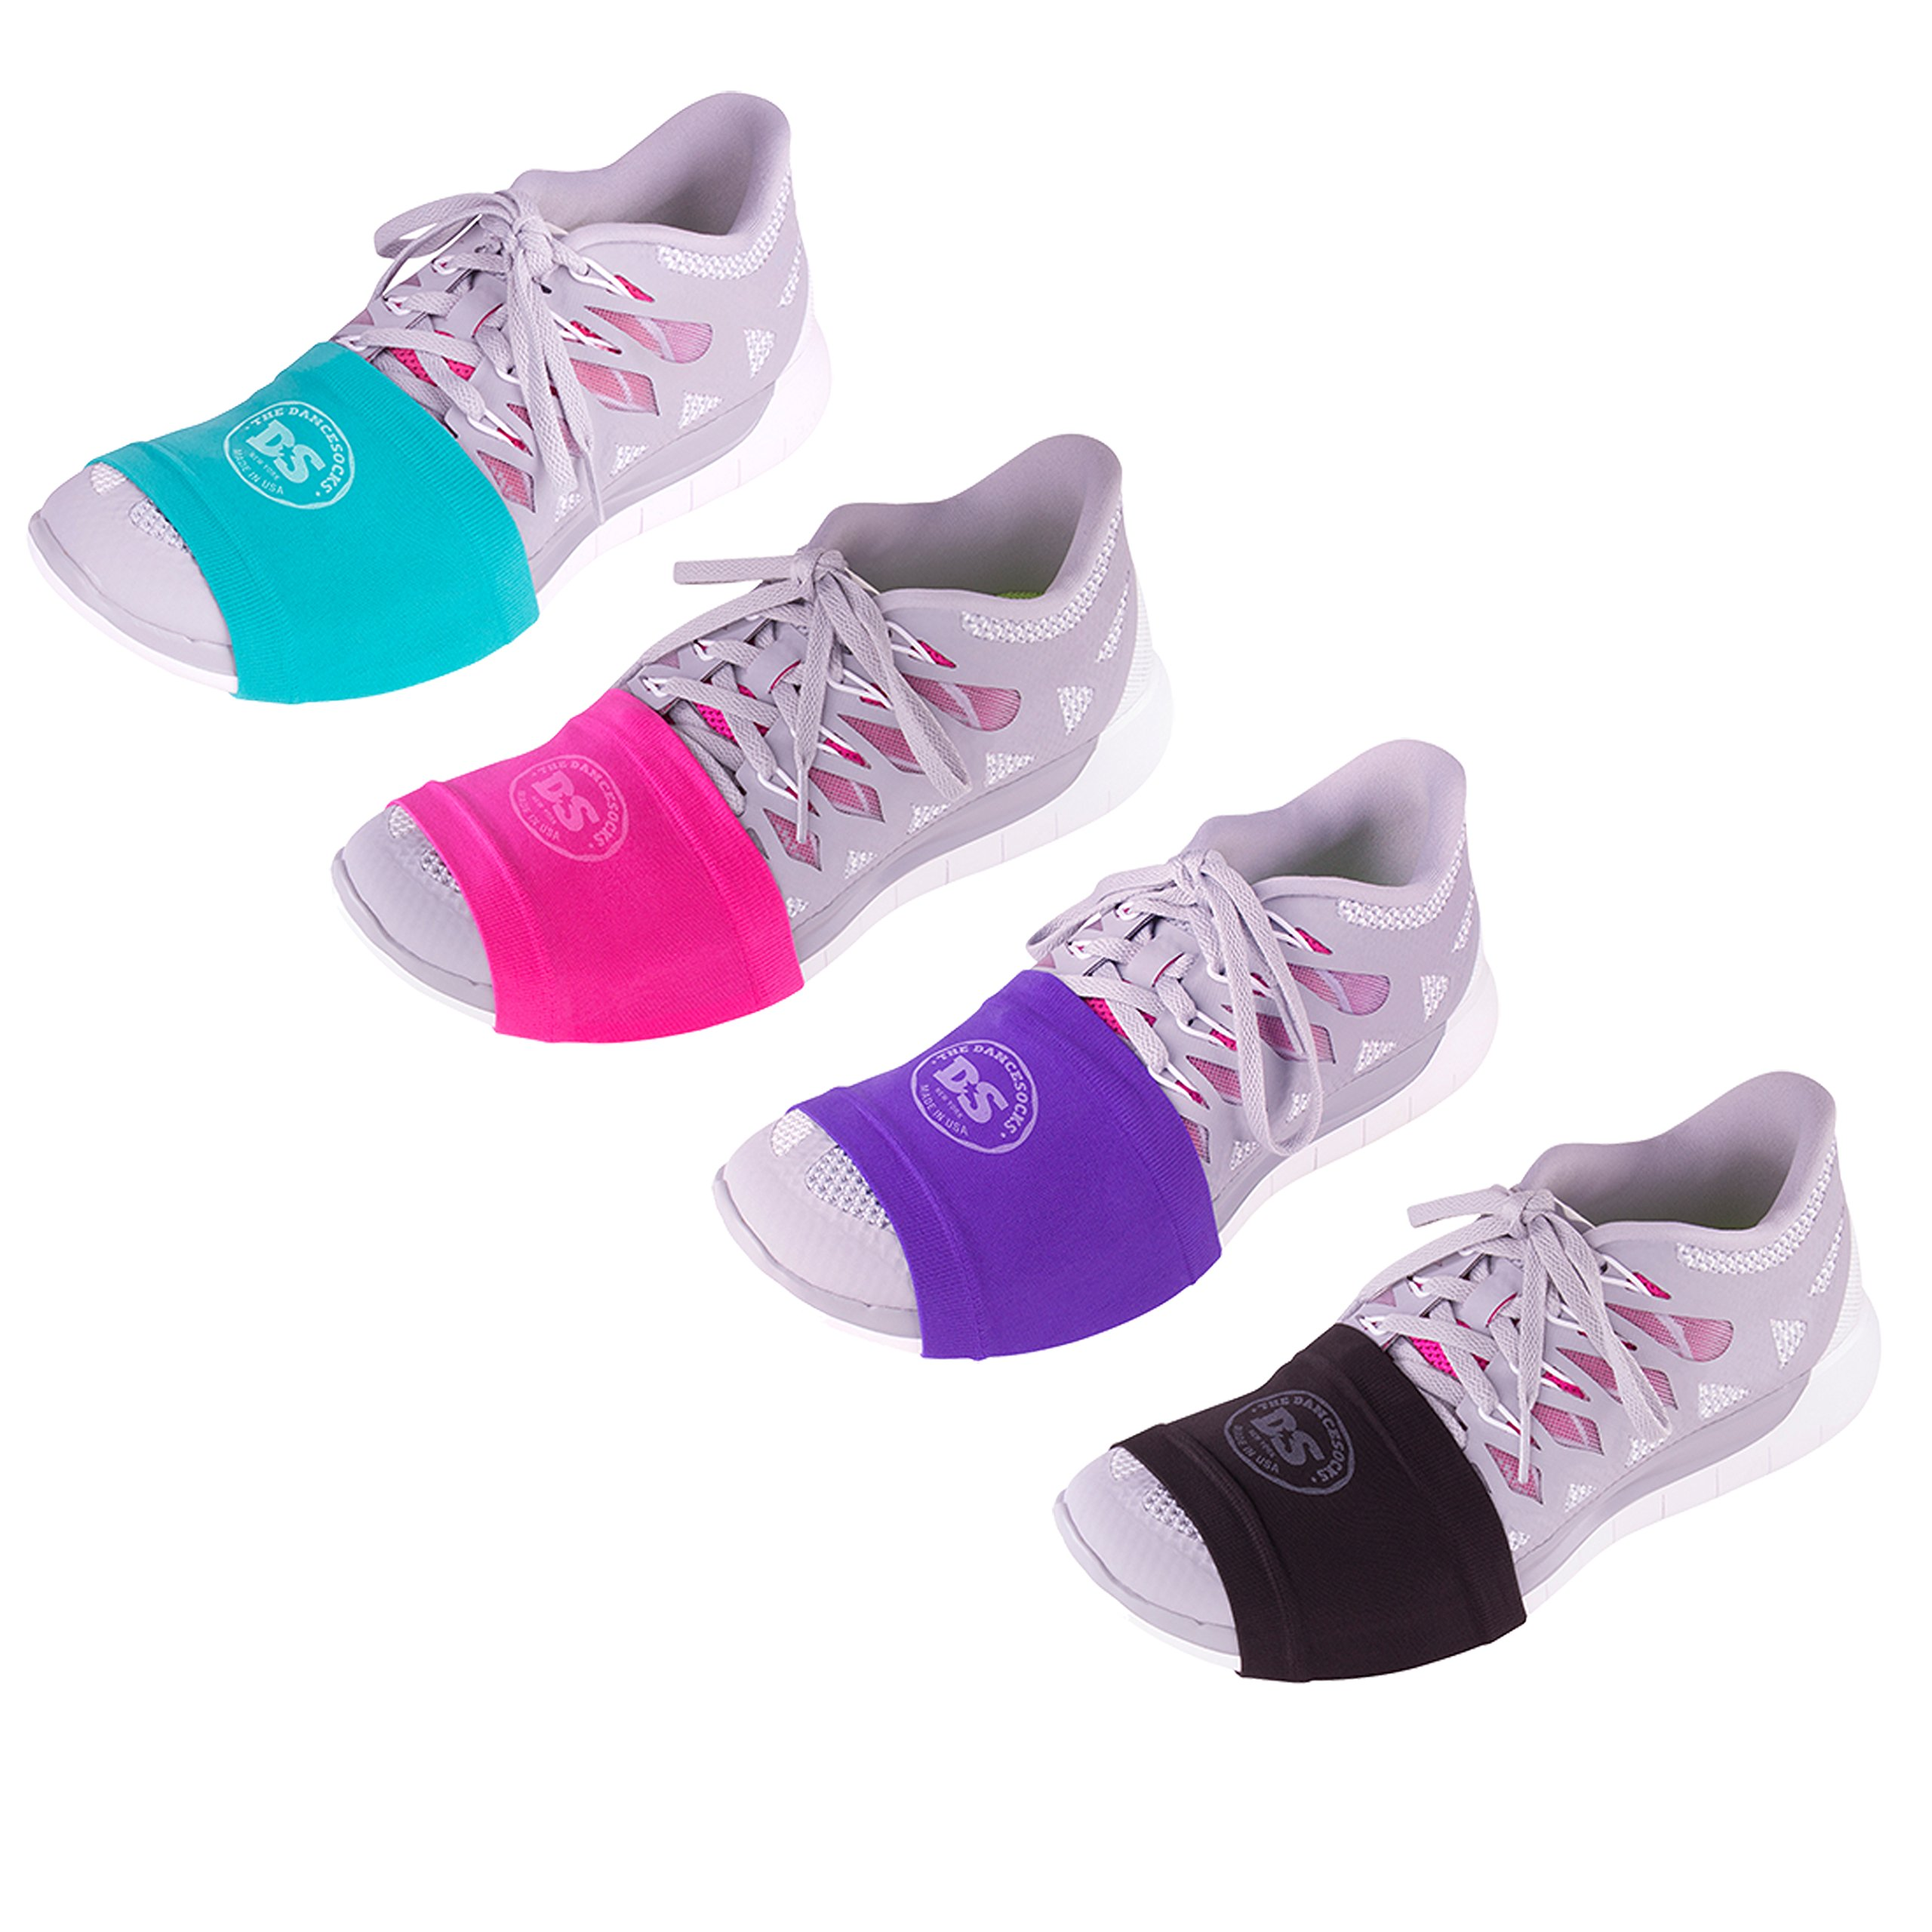 The Best Zumba Shoes The Shoes For Me